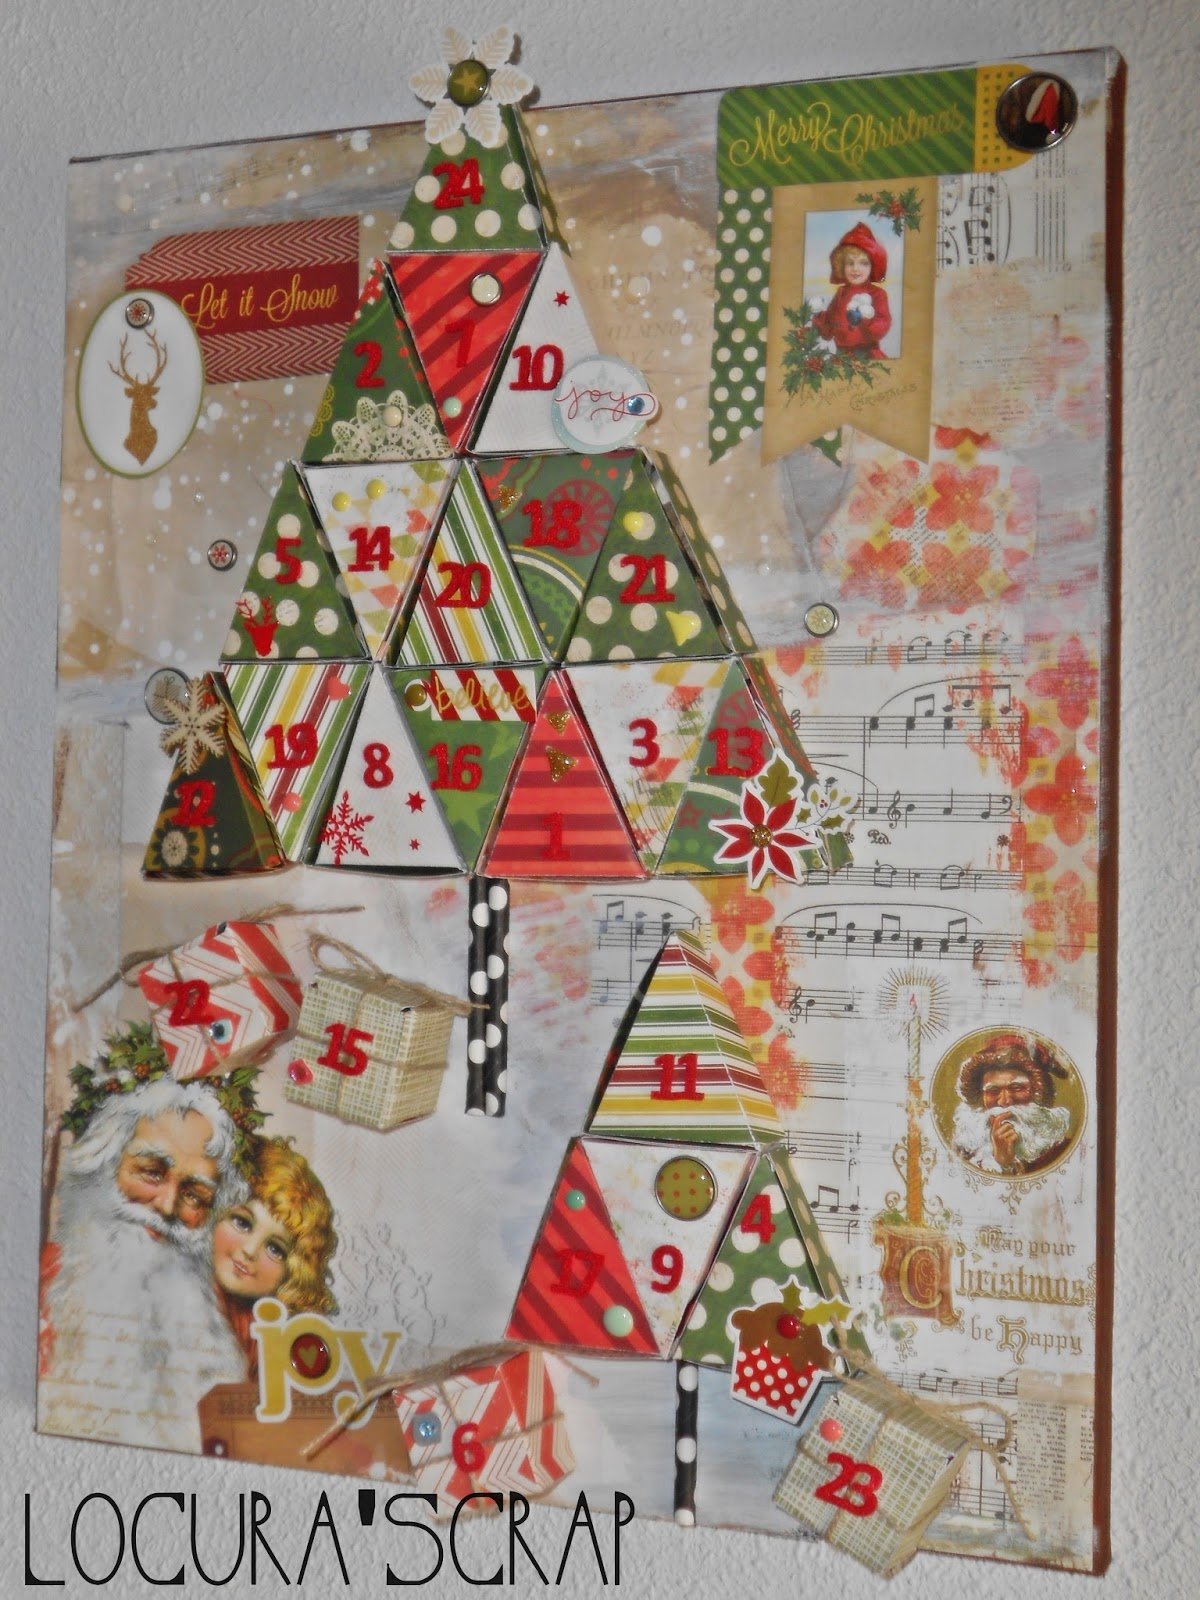 Locura 39 scrap blog dedicado al scrapbooking y for Calendario manualidades